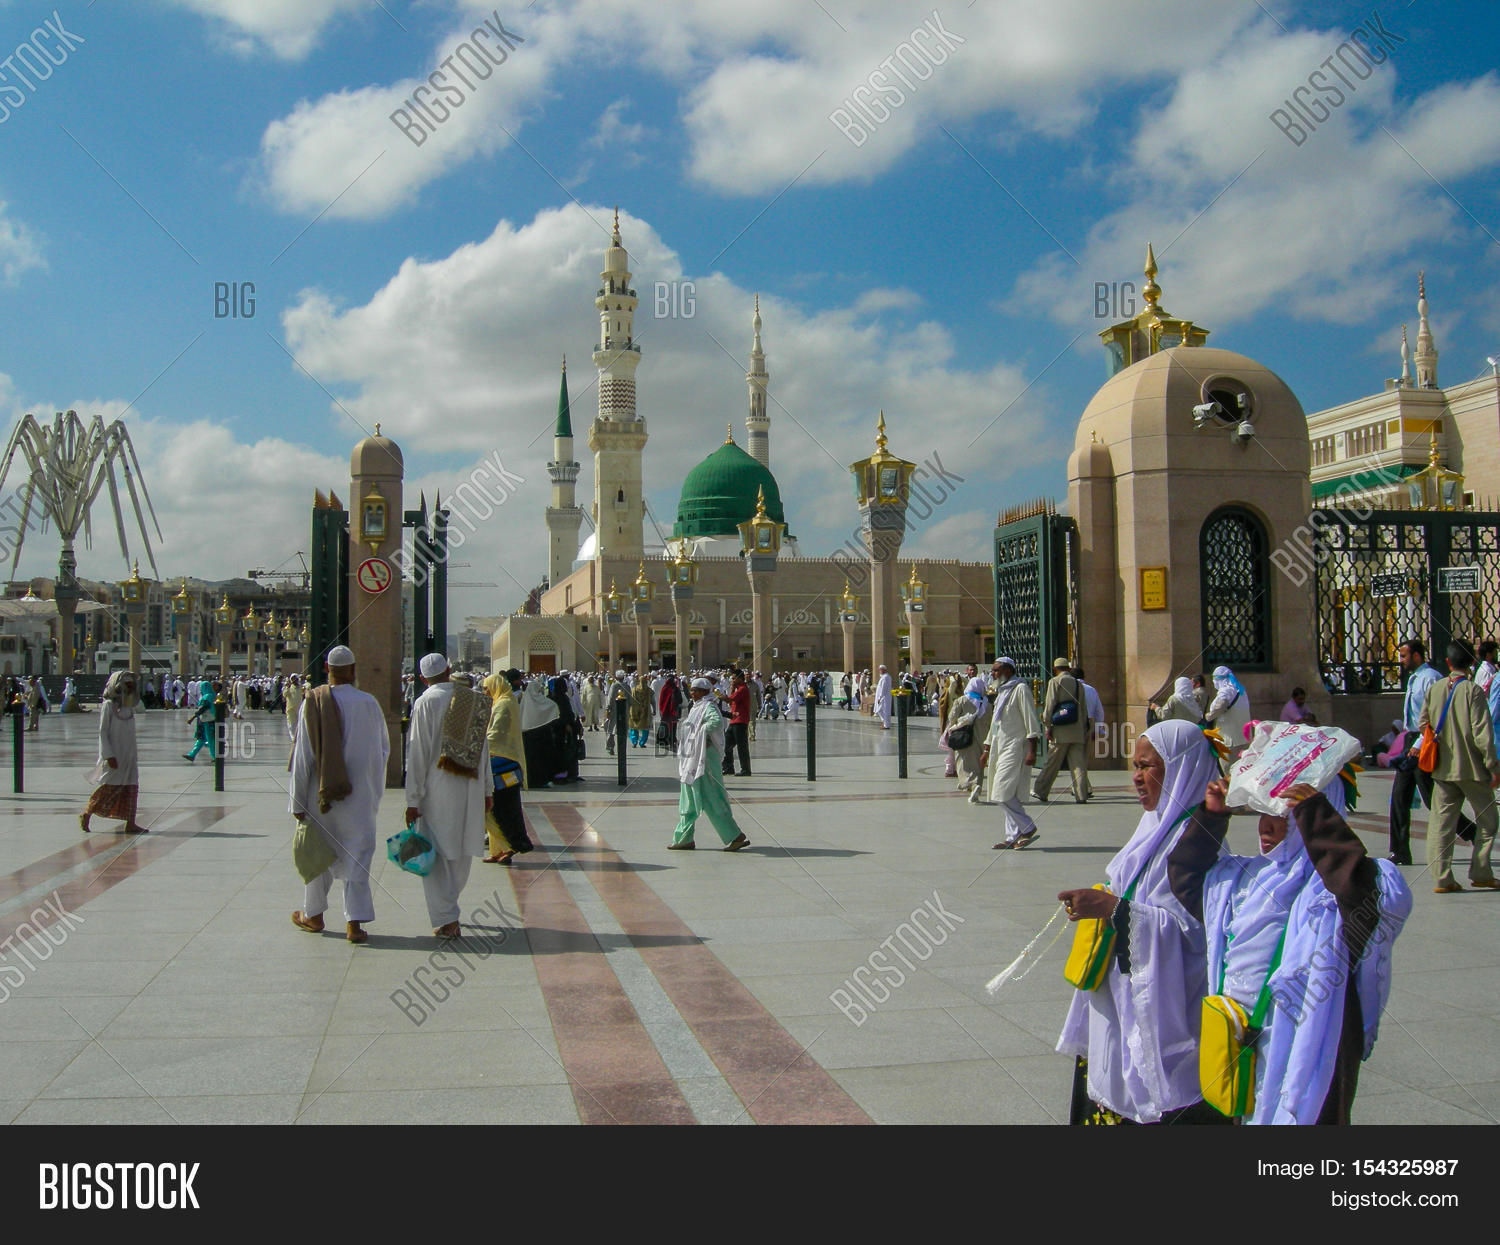 Medina,Saudi Arabia- Image & Photo (Free Trial) | Bigstock